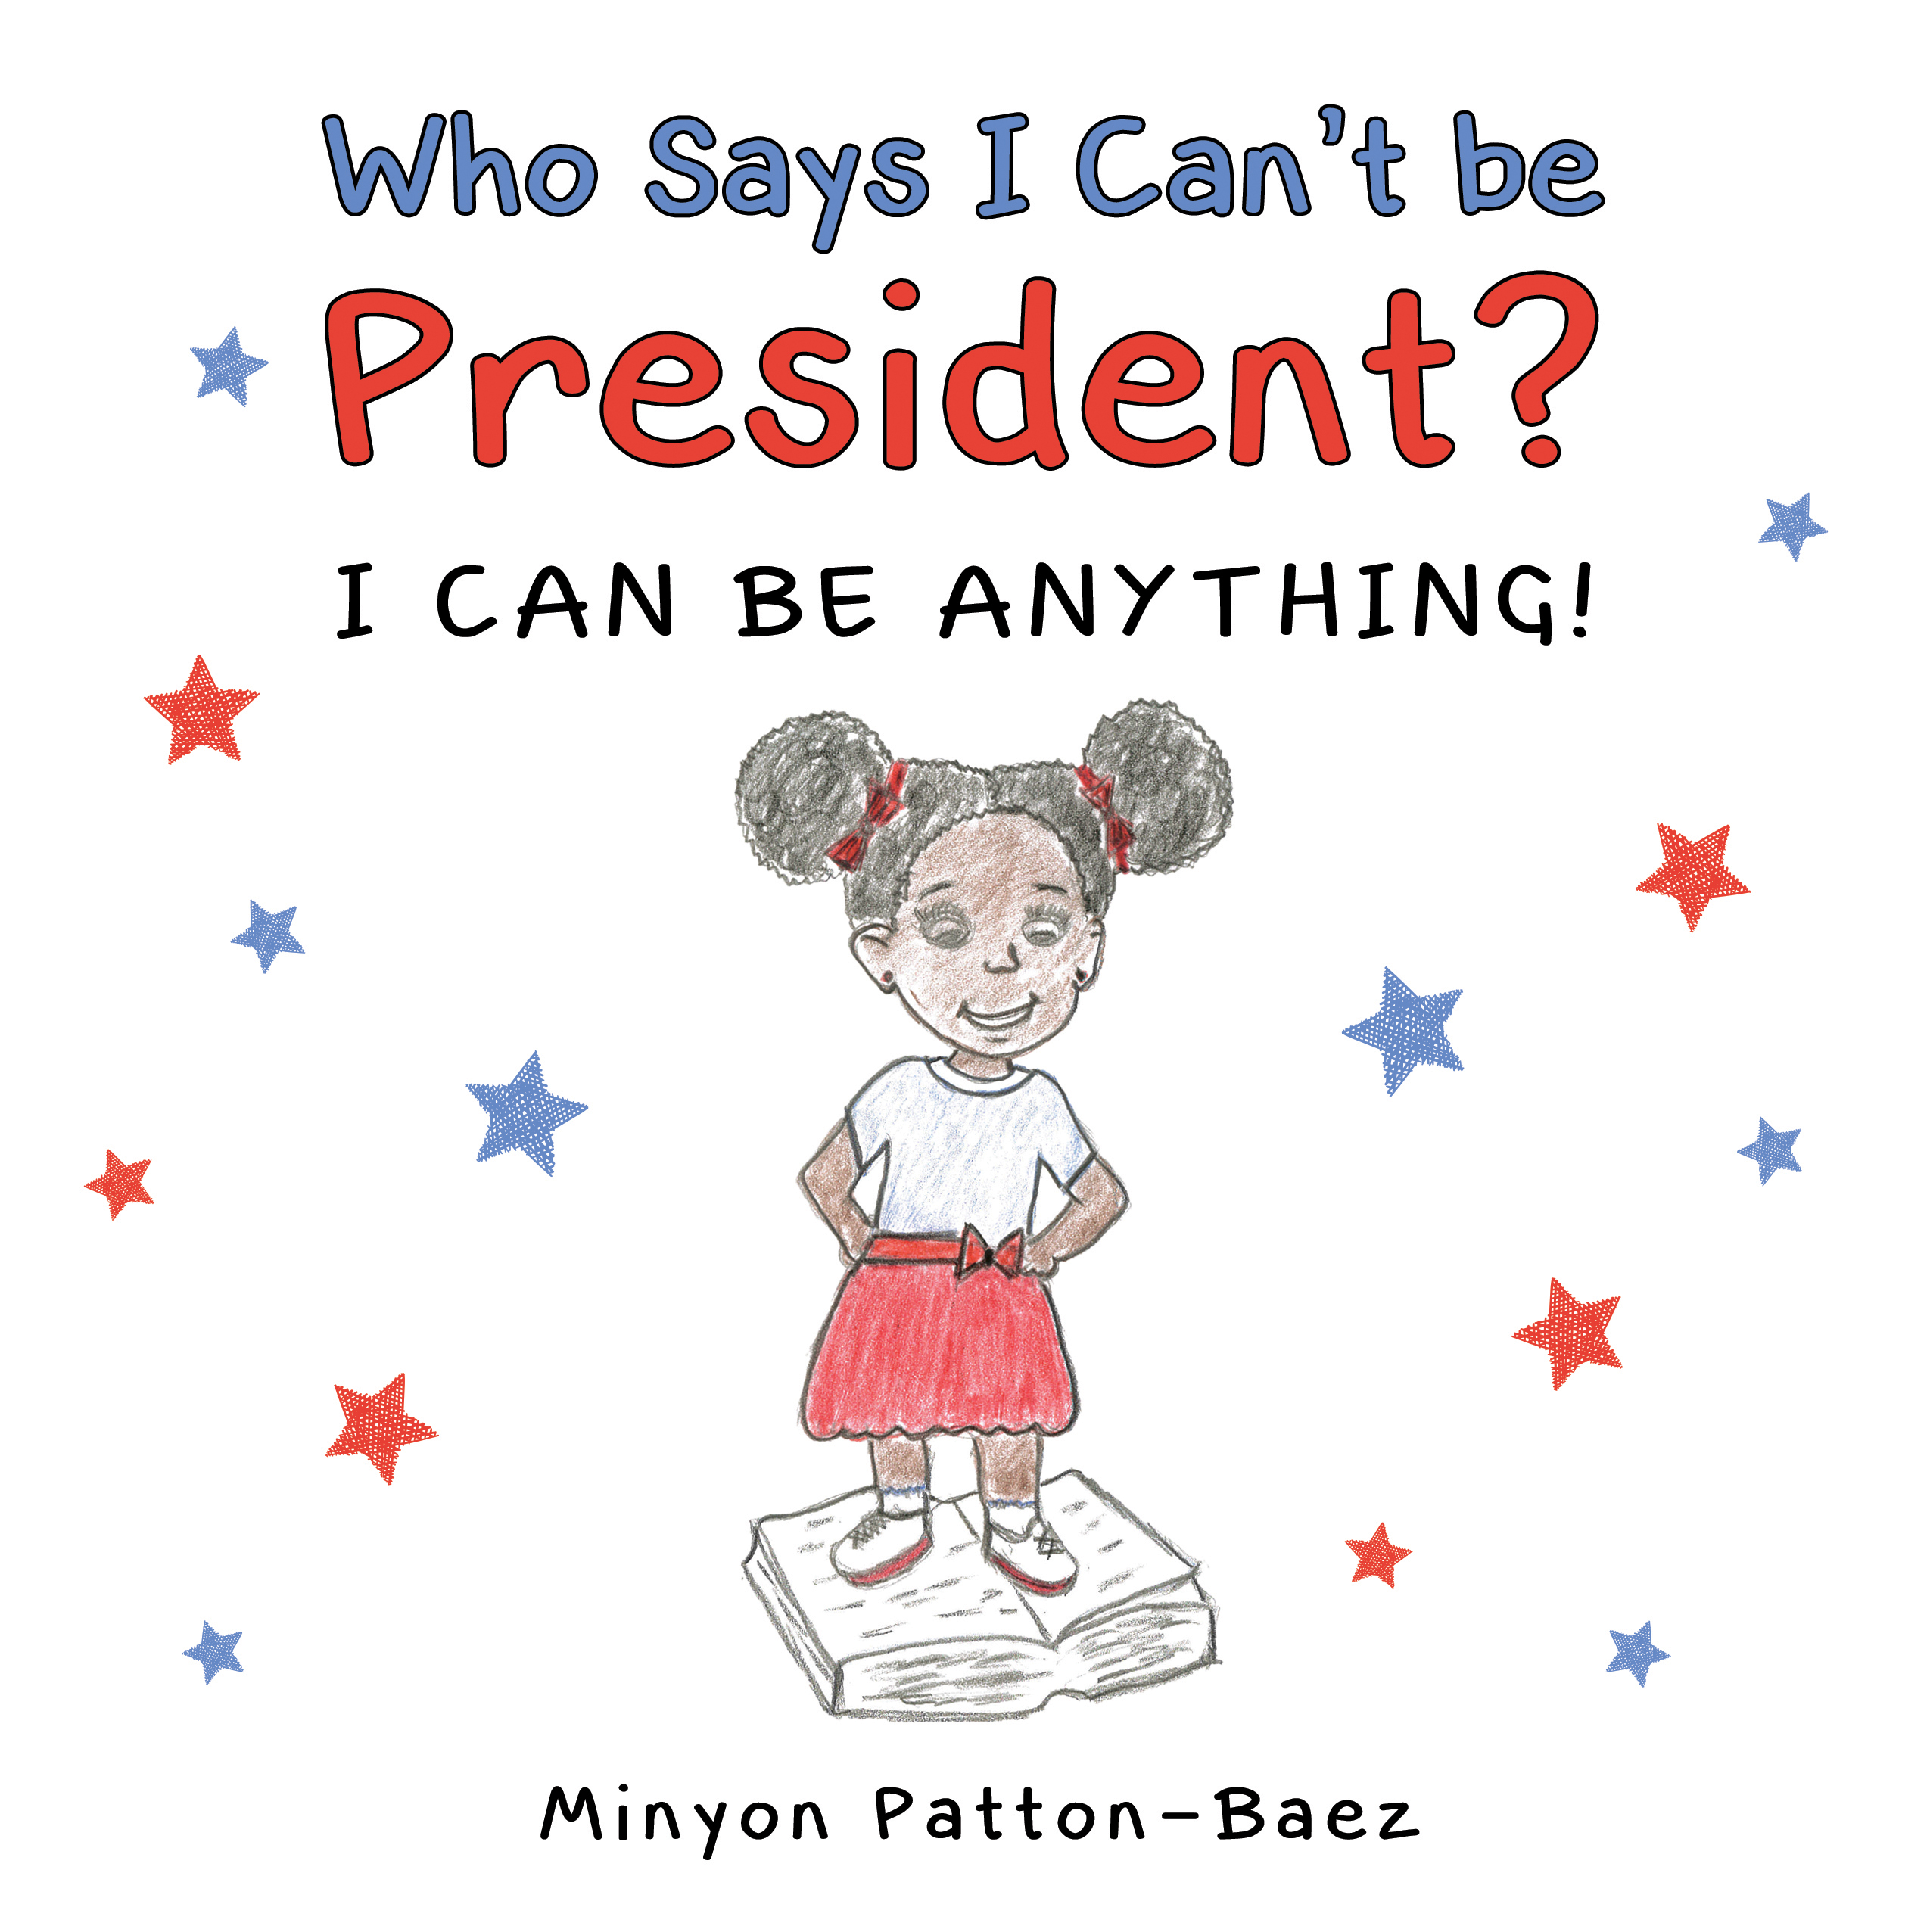 Who Says I Can't Be President? by Minyon Patton‐Baez